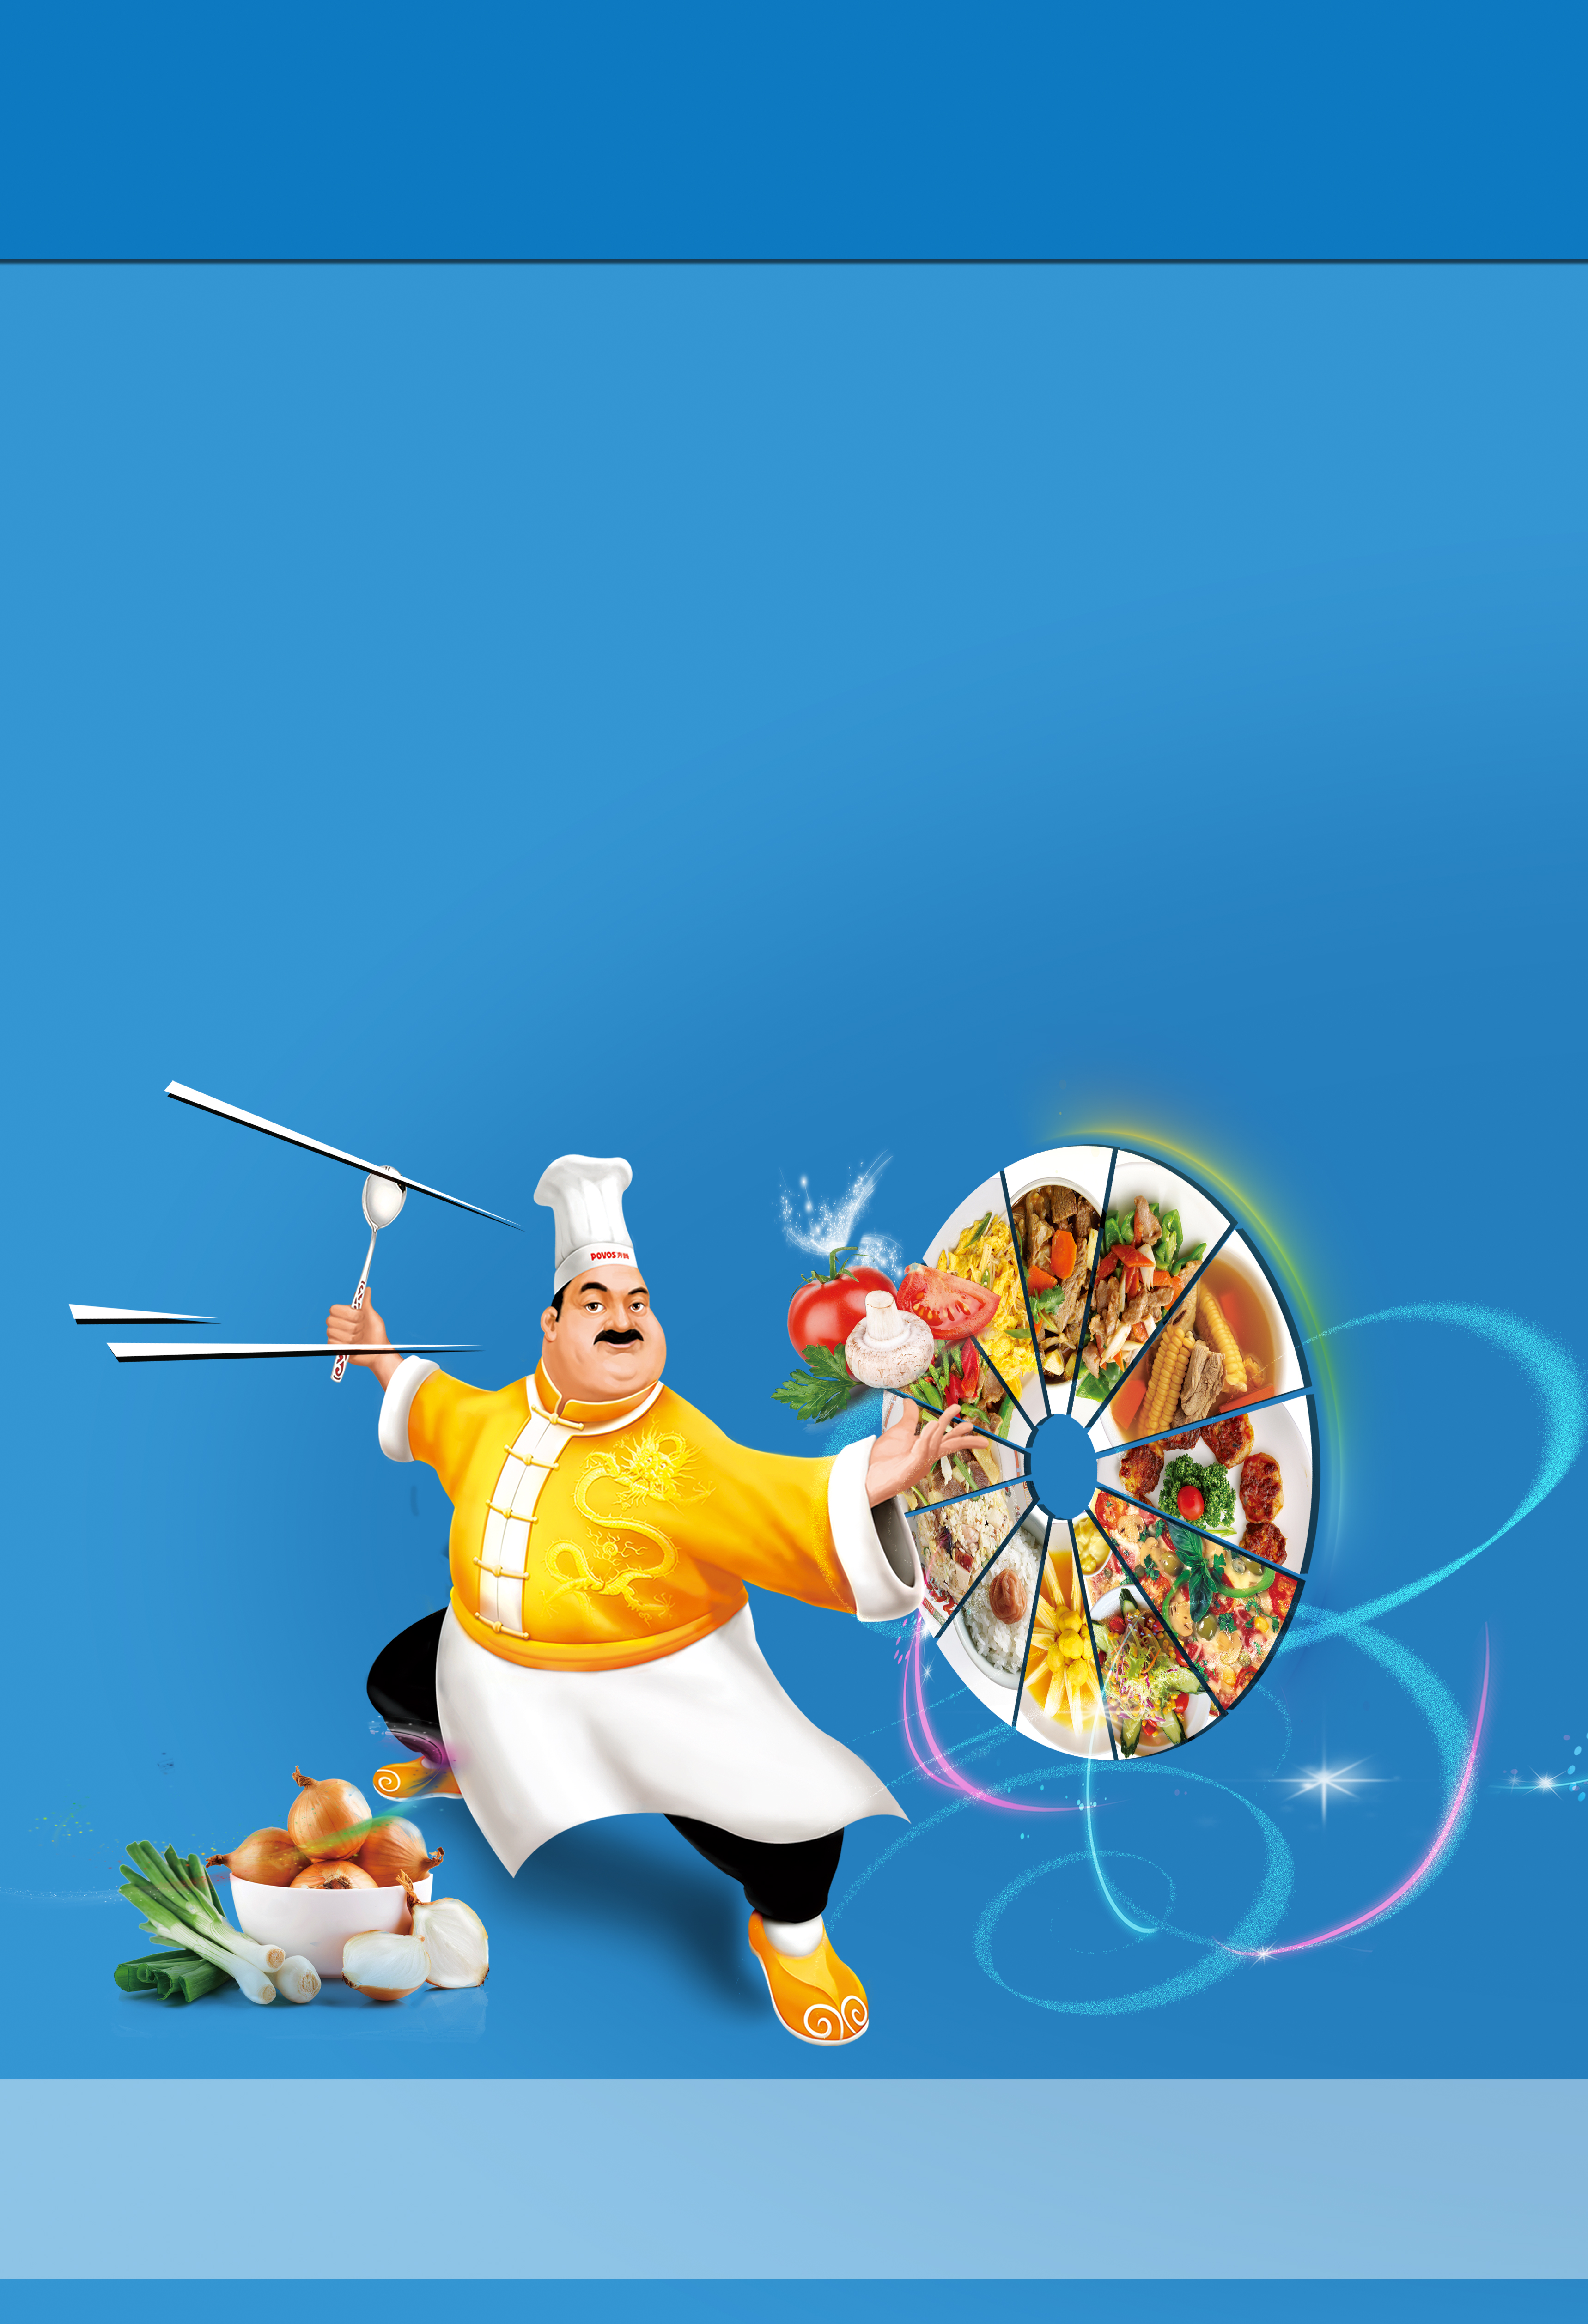 cooking competition poster background material  kitchen